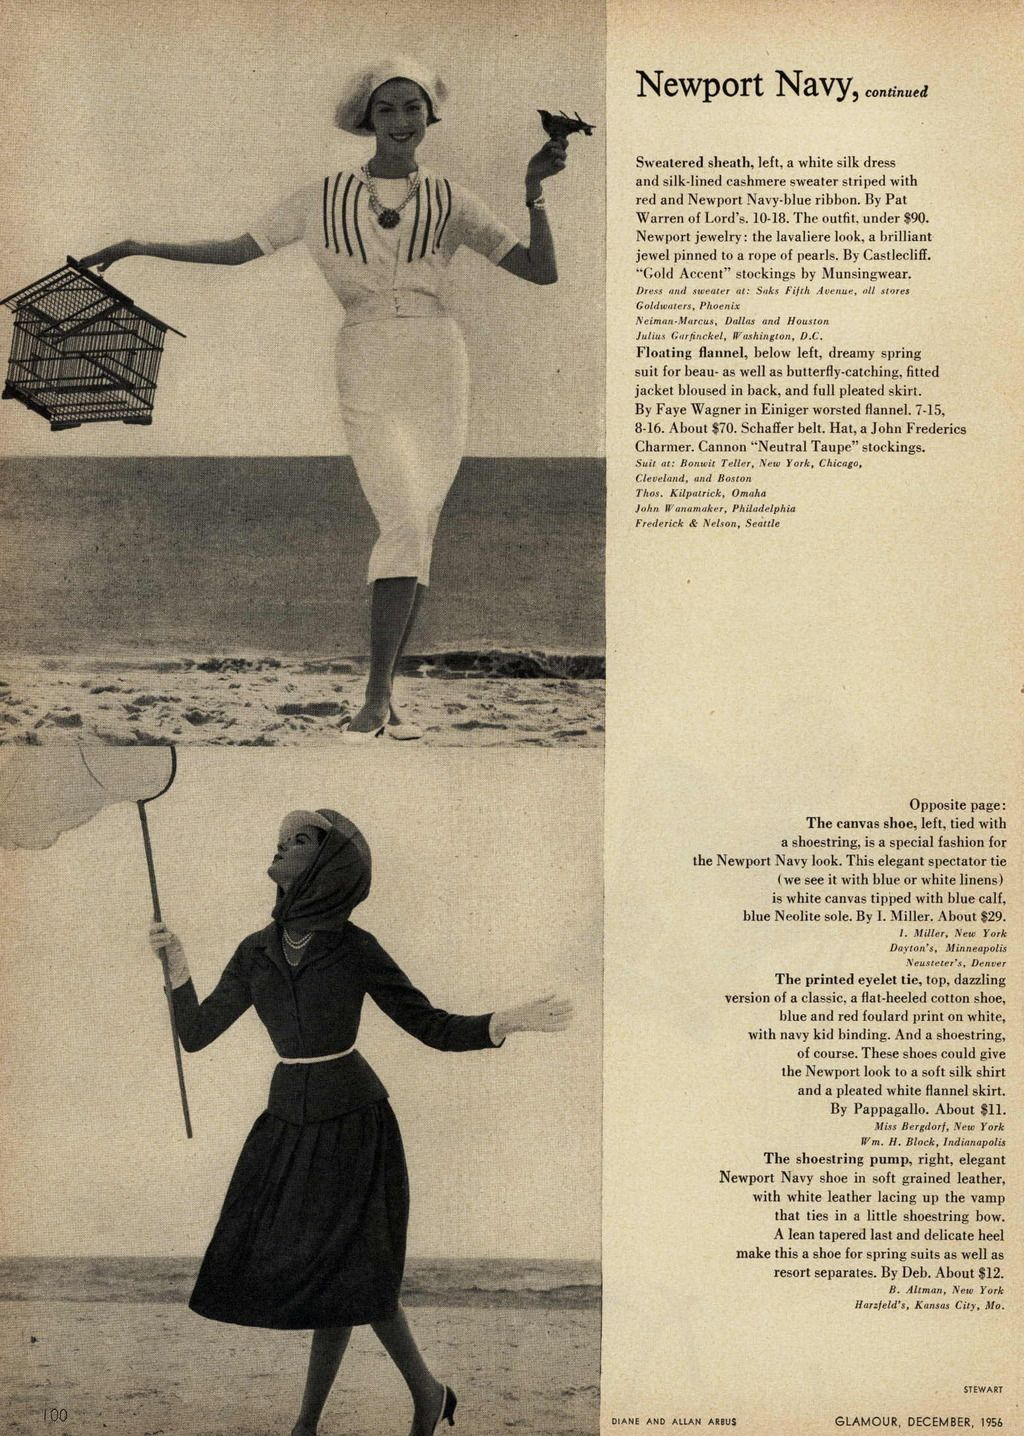 Glamour Editorial The New Year's New Look: Newport Navy, December 1956 Shot #5